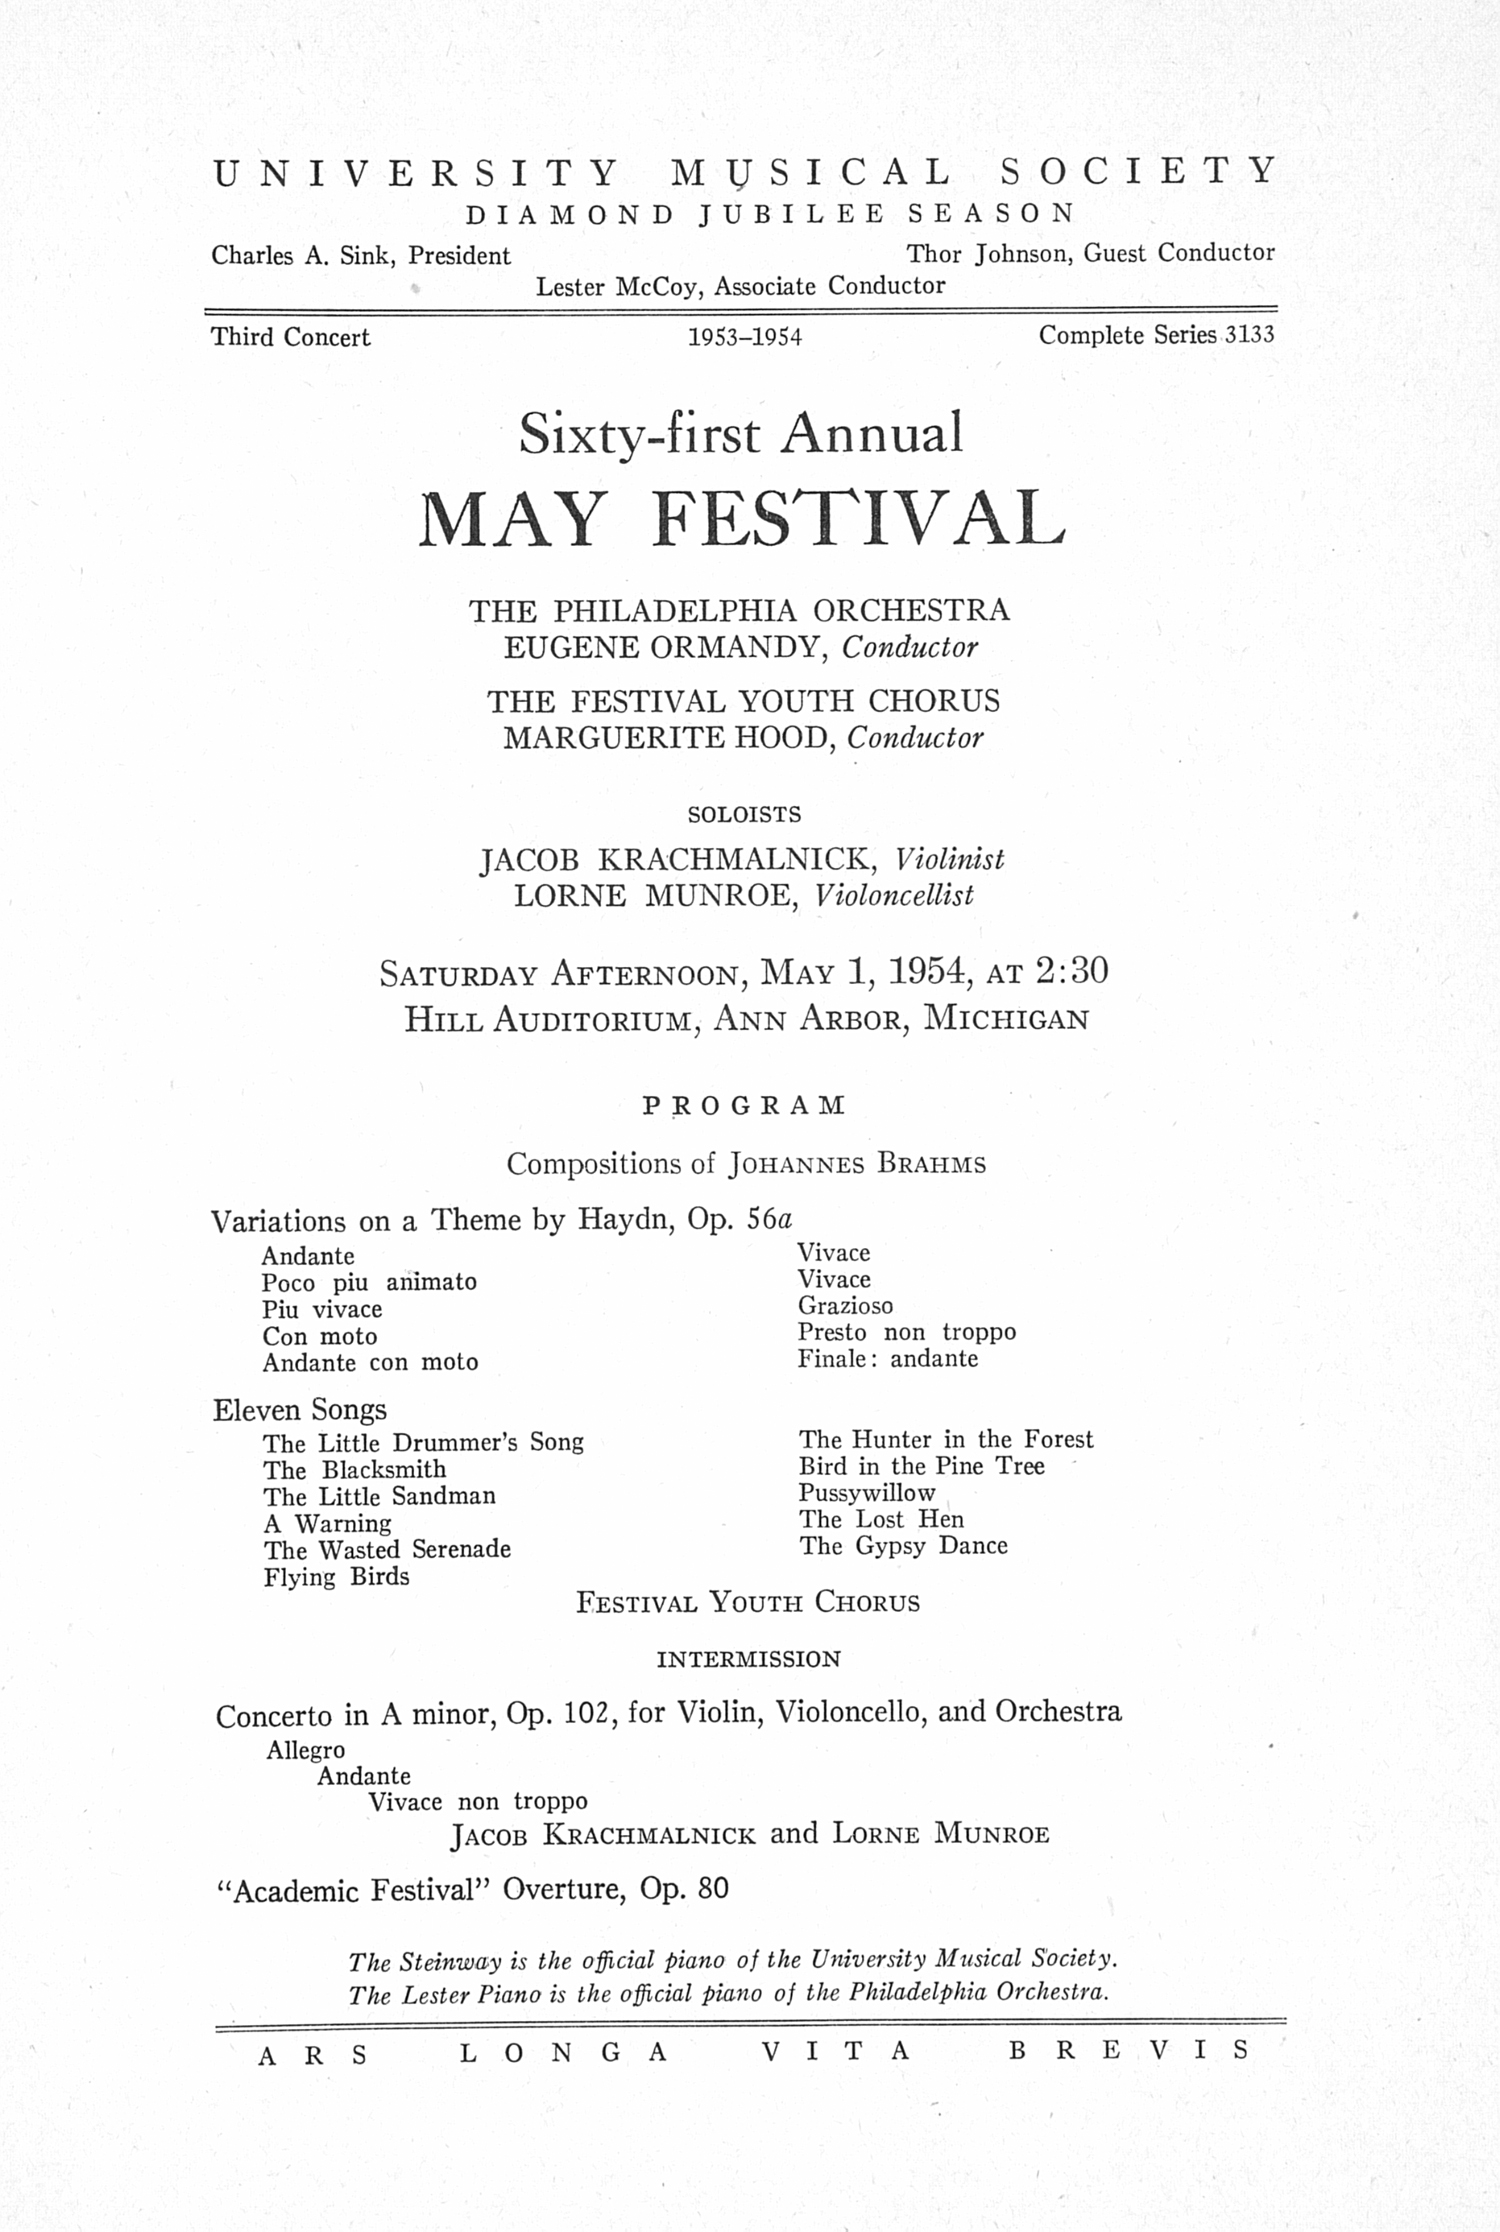 UMS Concert Program, May 1, 1954: Sixty-first Annual May Festival -- The Philadelphia Orchestra image